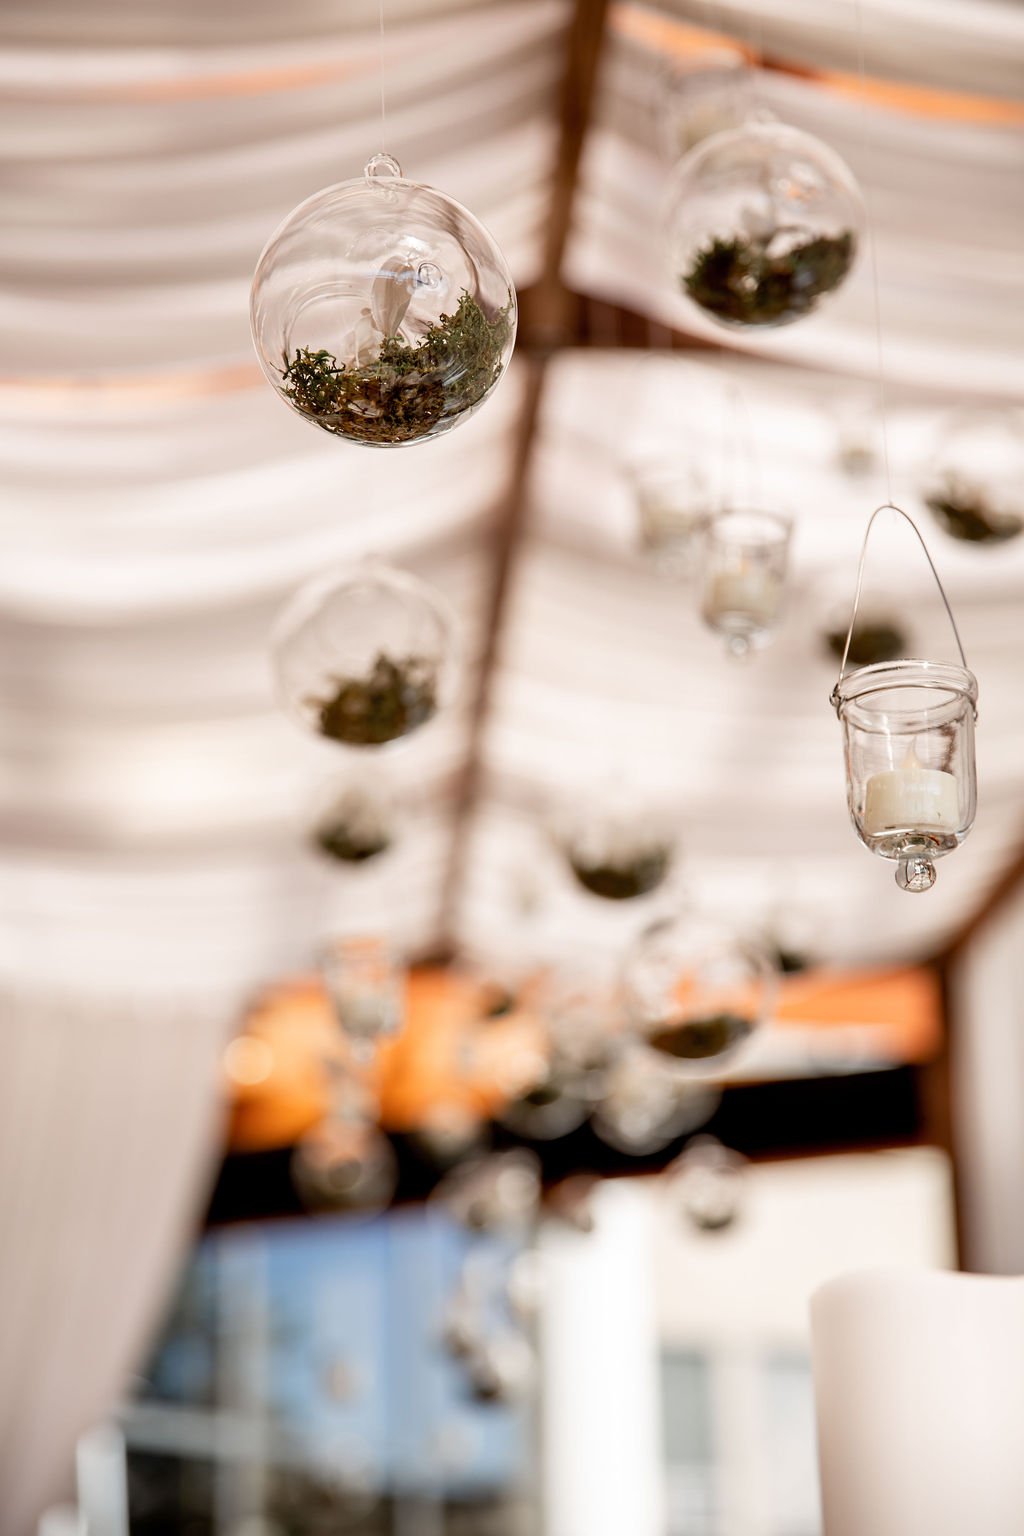 Glass bubble float above wedding table at Pacific Gateway Hotel Vancouver